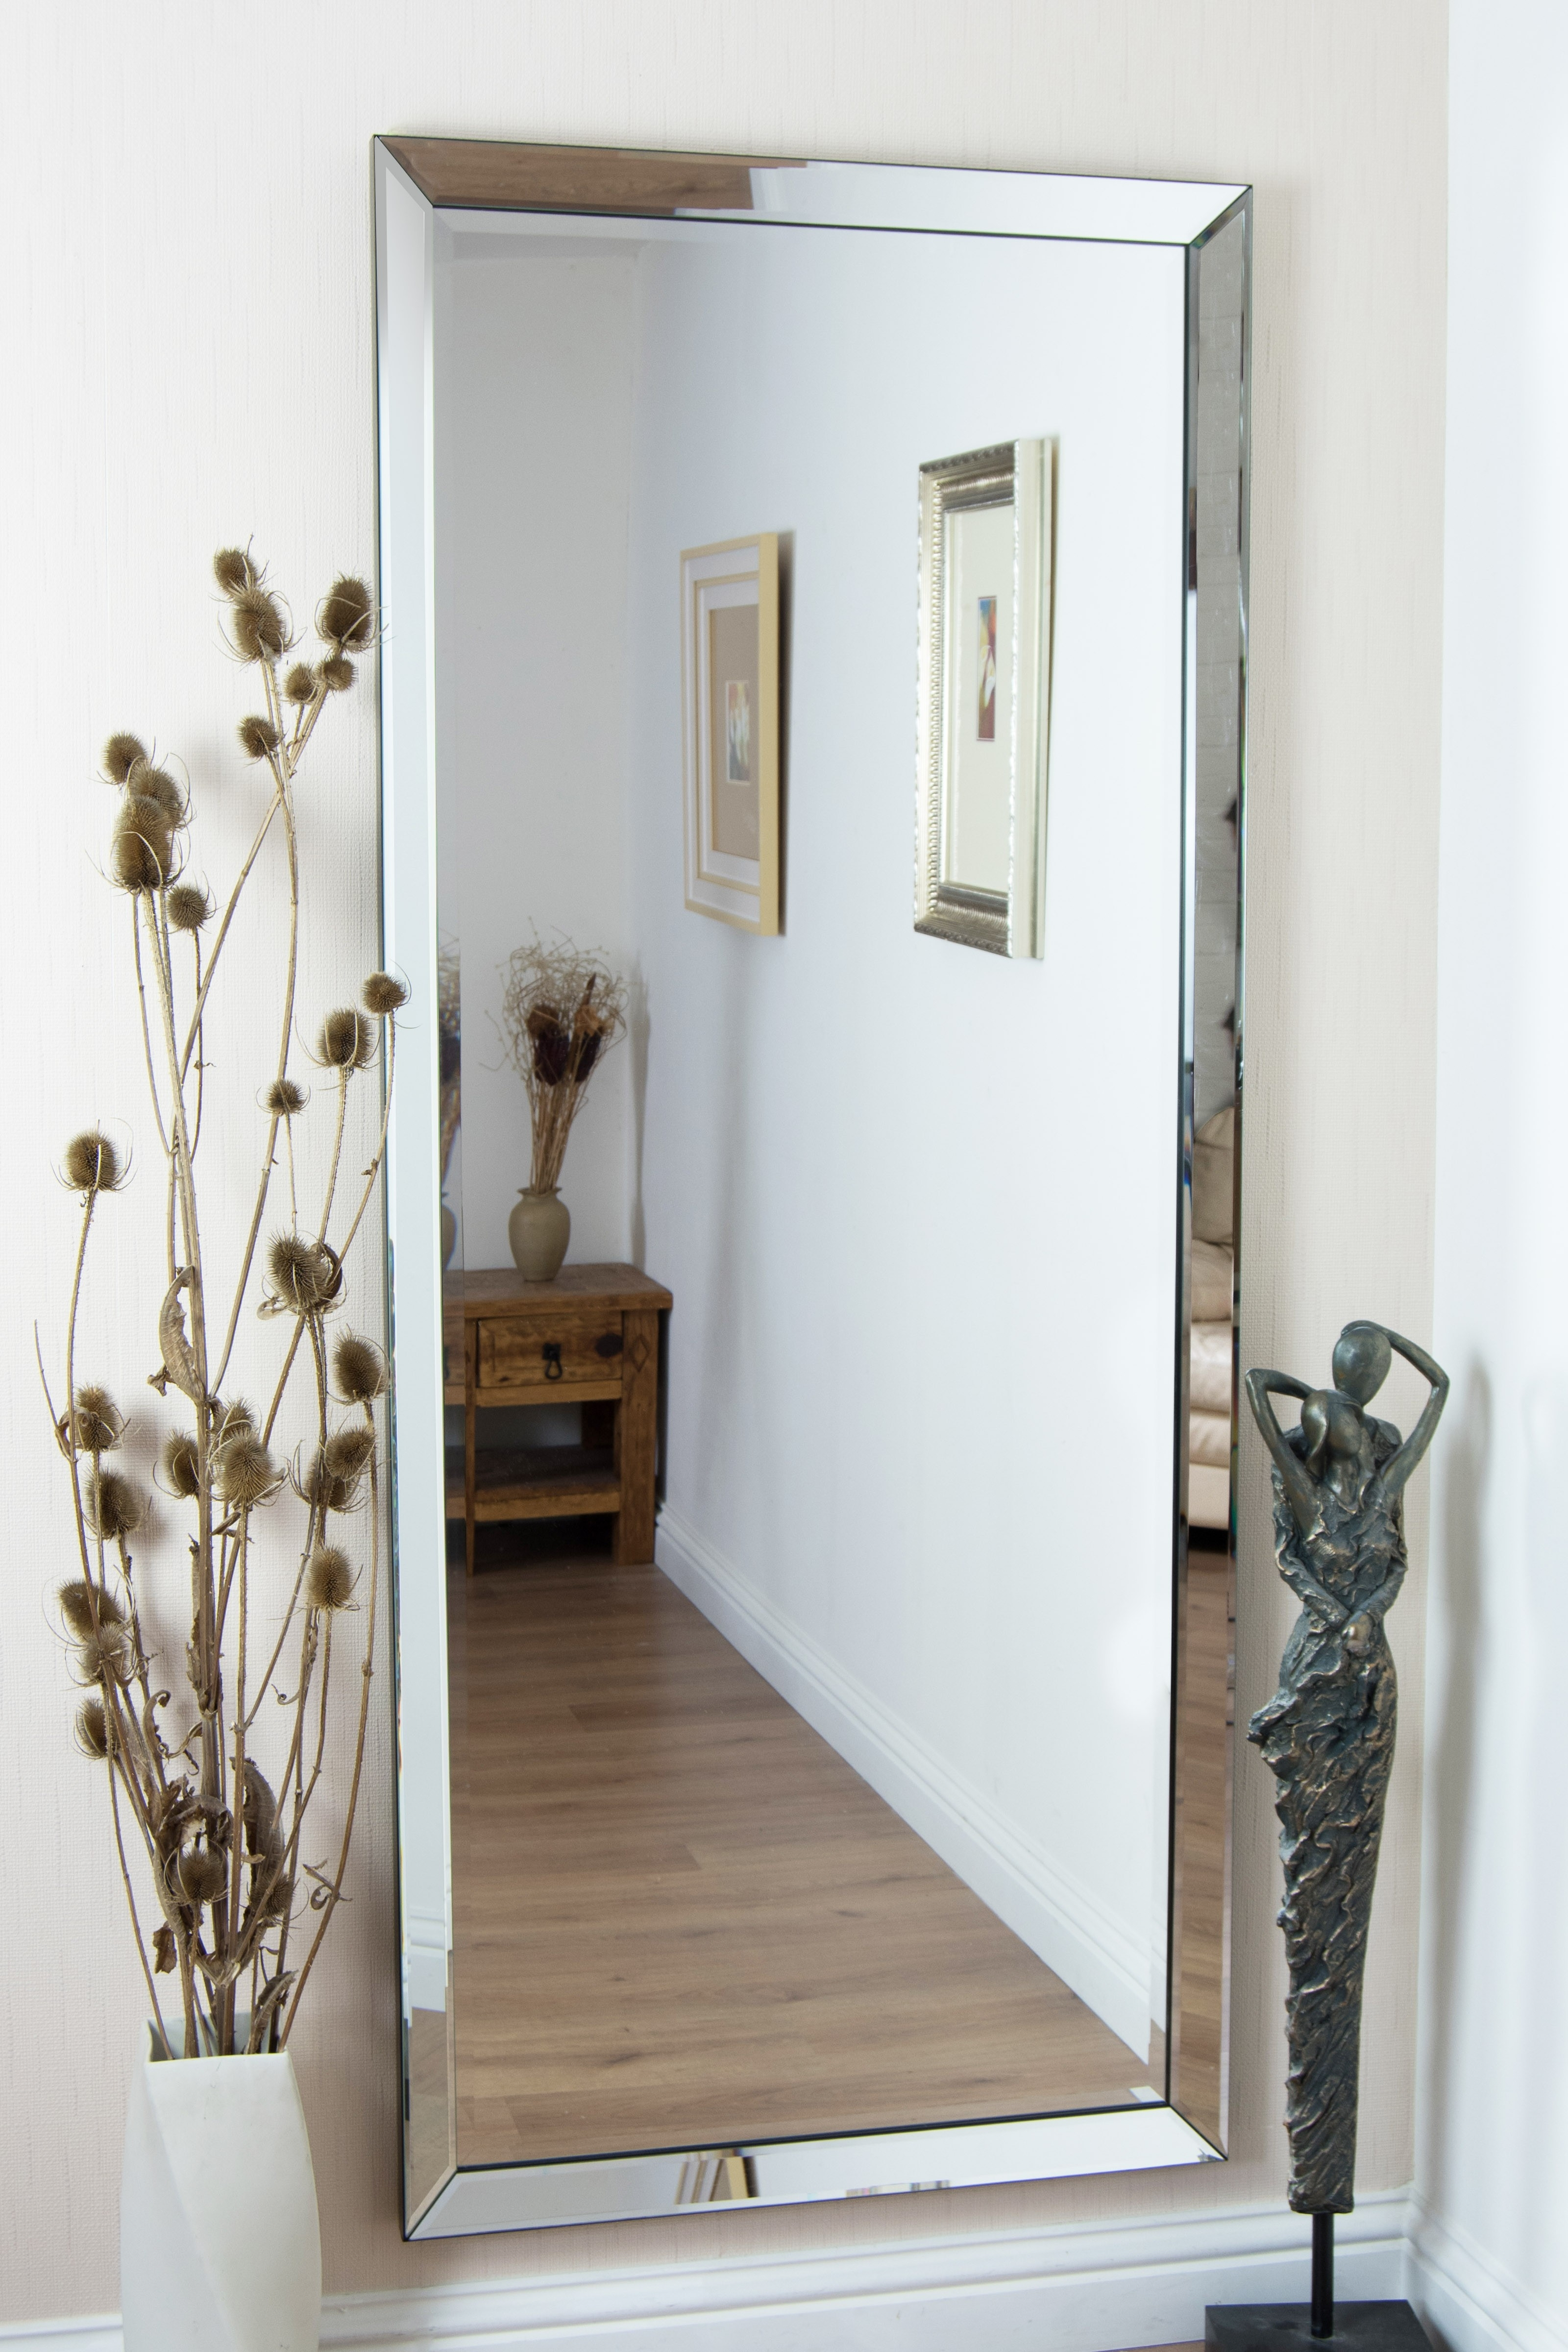 Marvelous Ideas Large Frameless Wall Mirrors Shining Modern Silver Regarding Frameless Large Wall Mirror (Image 10 of 15)